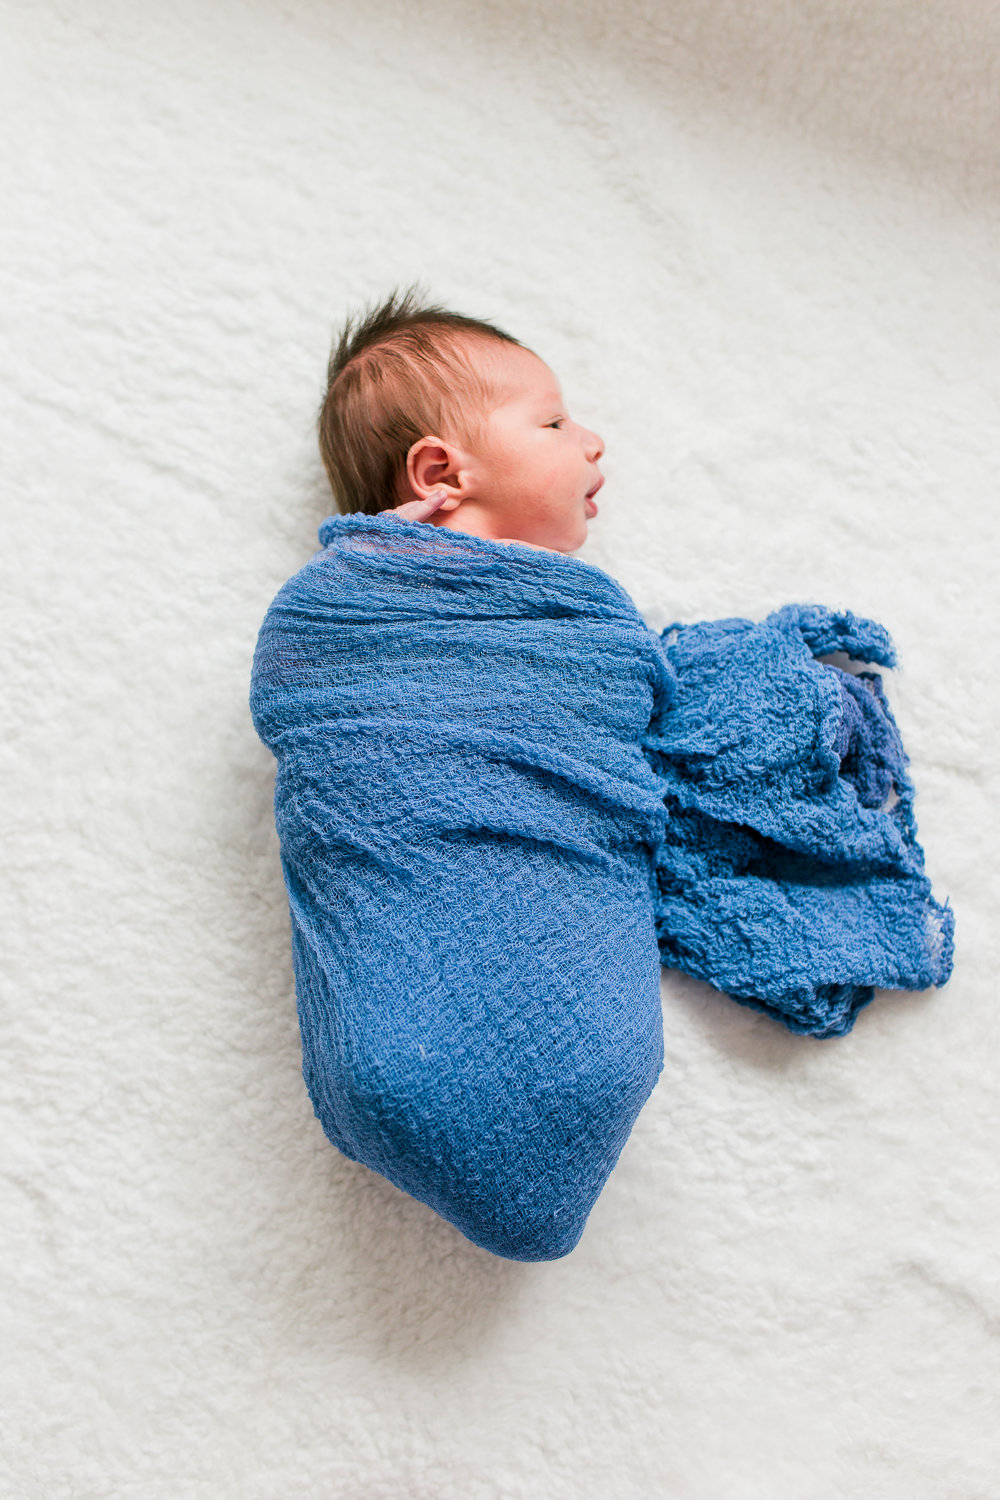 Emmett Newborns - Utah Family Photographer-41.jpg